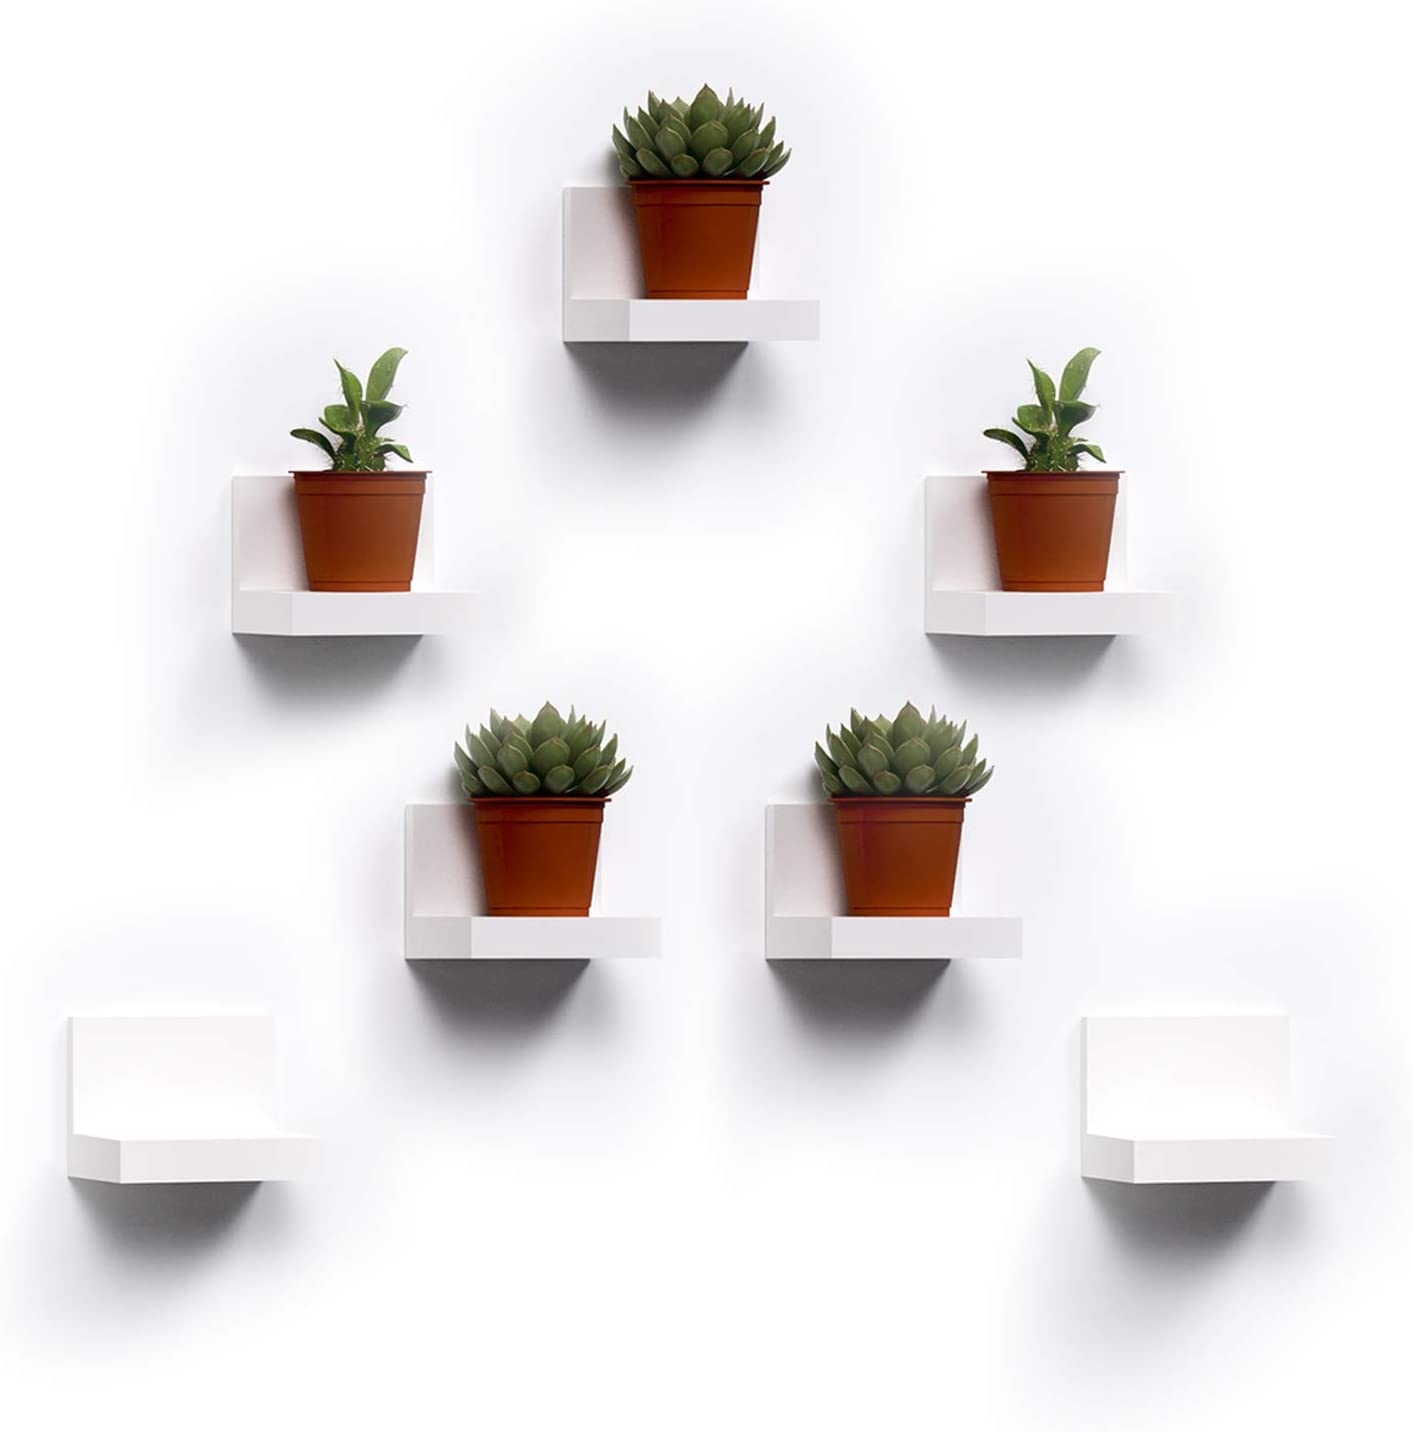 7-Pack Small Floating Shelves for Wall by RicherHouse, 4-inch Display Ledges for Small Decor, Small Wall Shelf with 2 Types of Installation - White